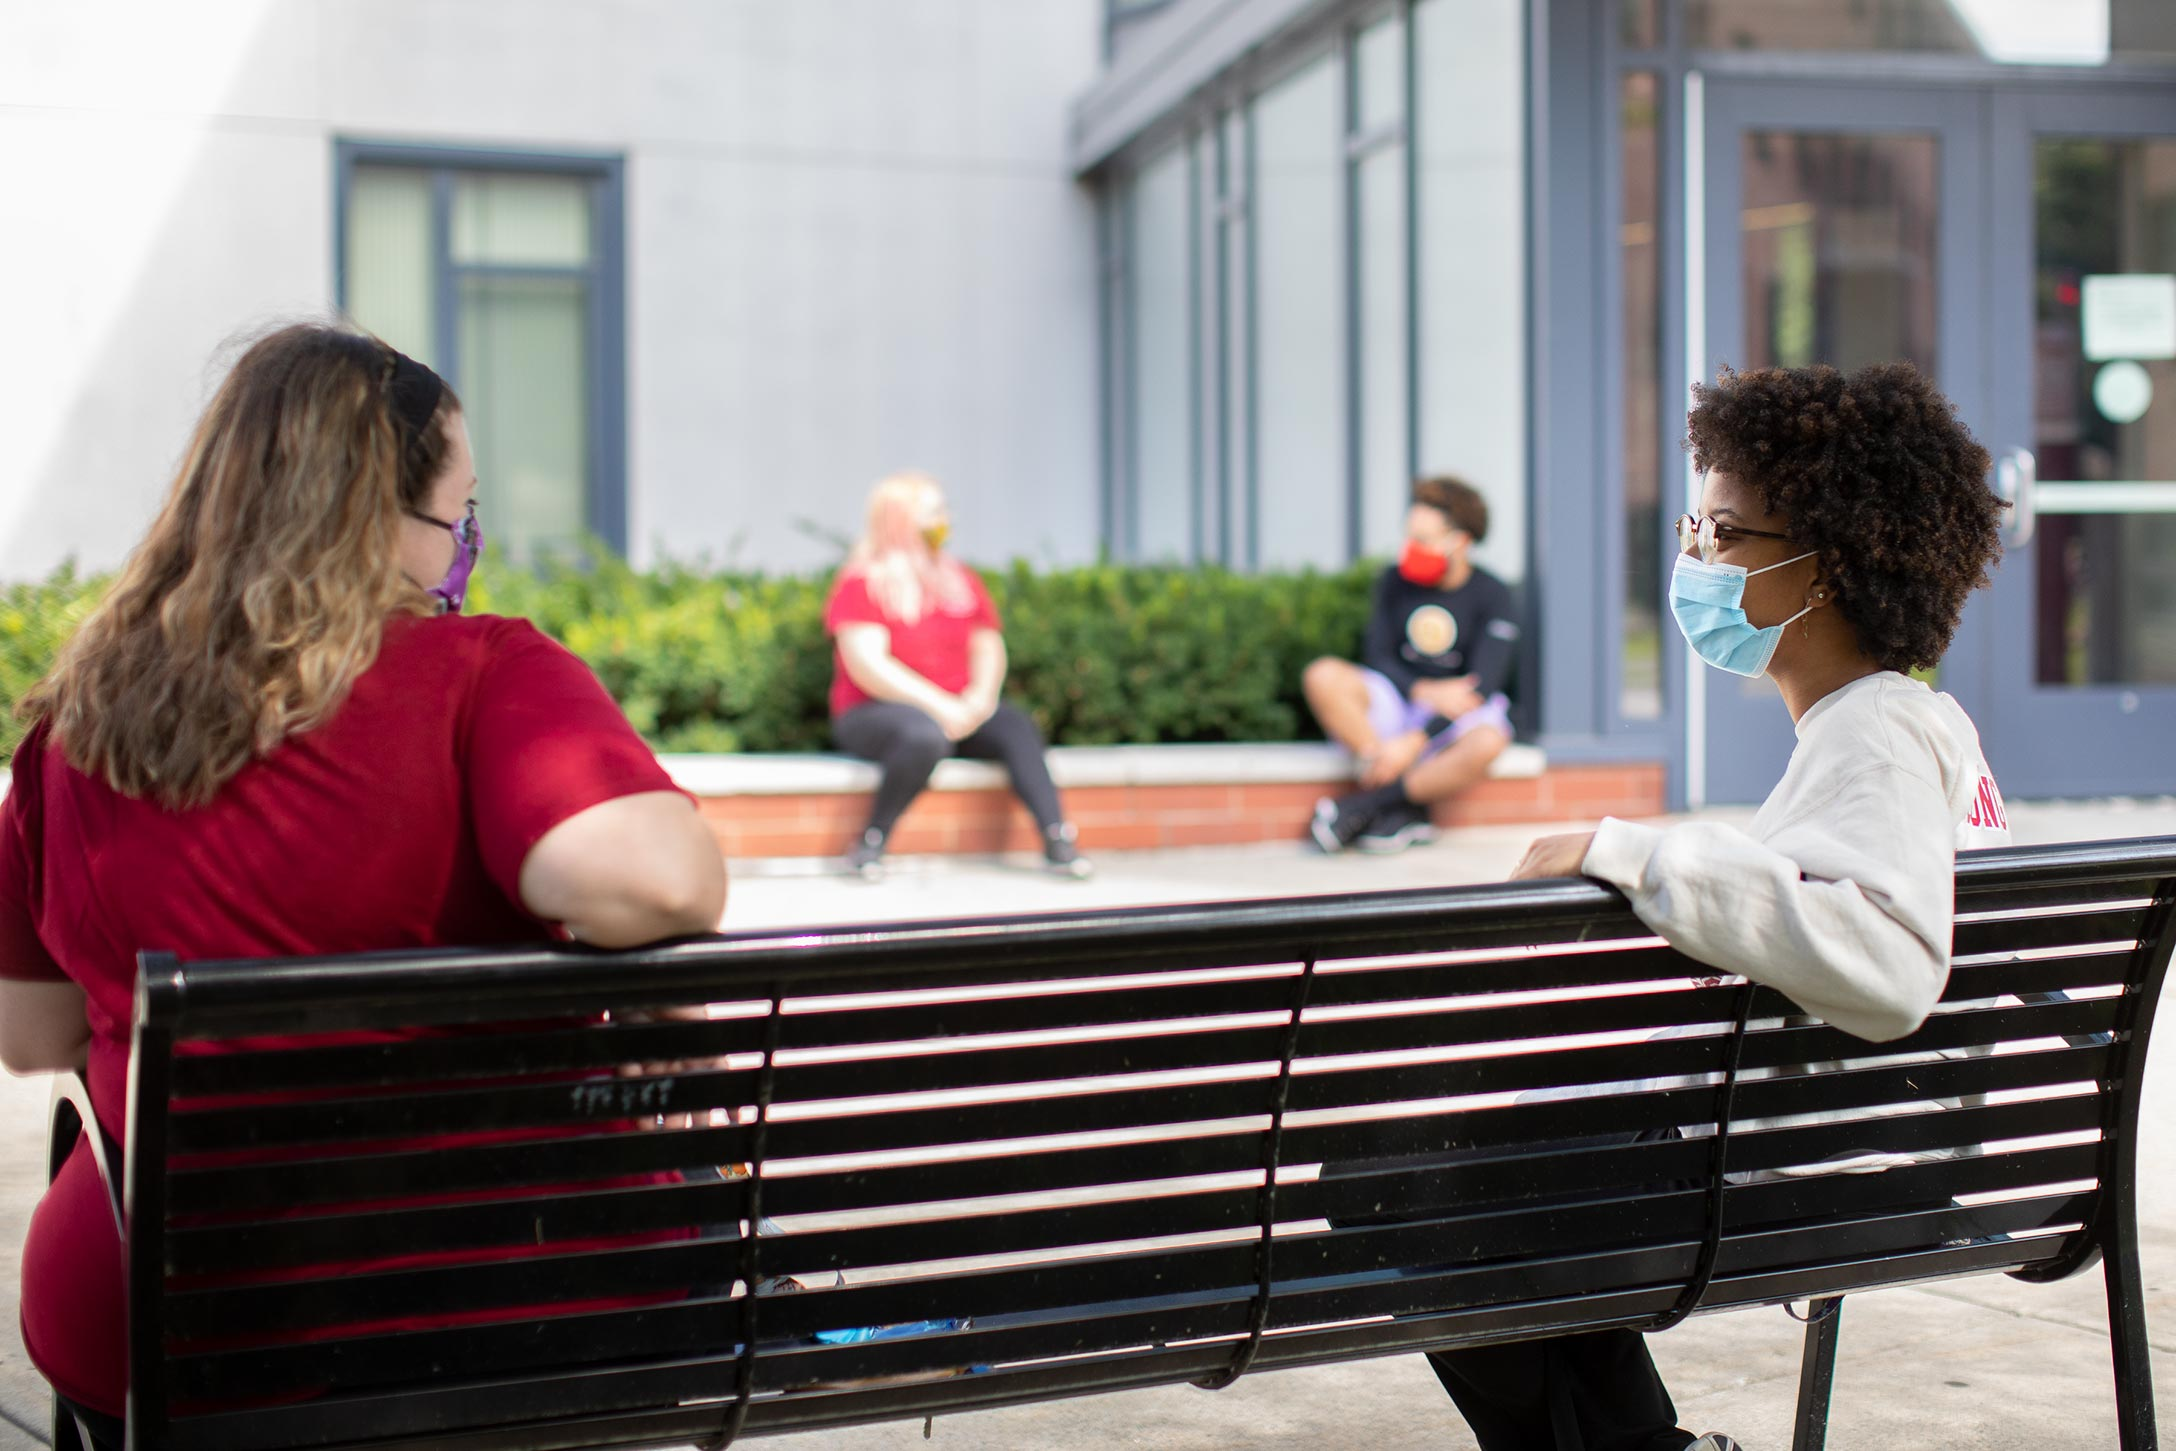 Students wearing face masks are shown conversing from opposite ends of a bench.